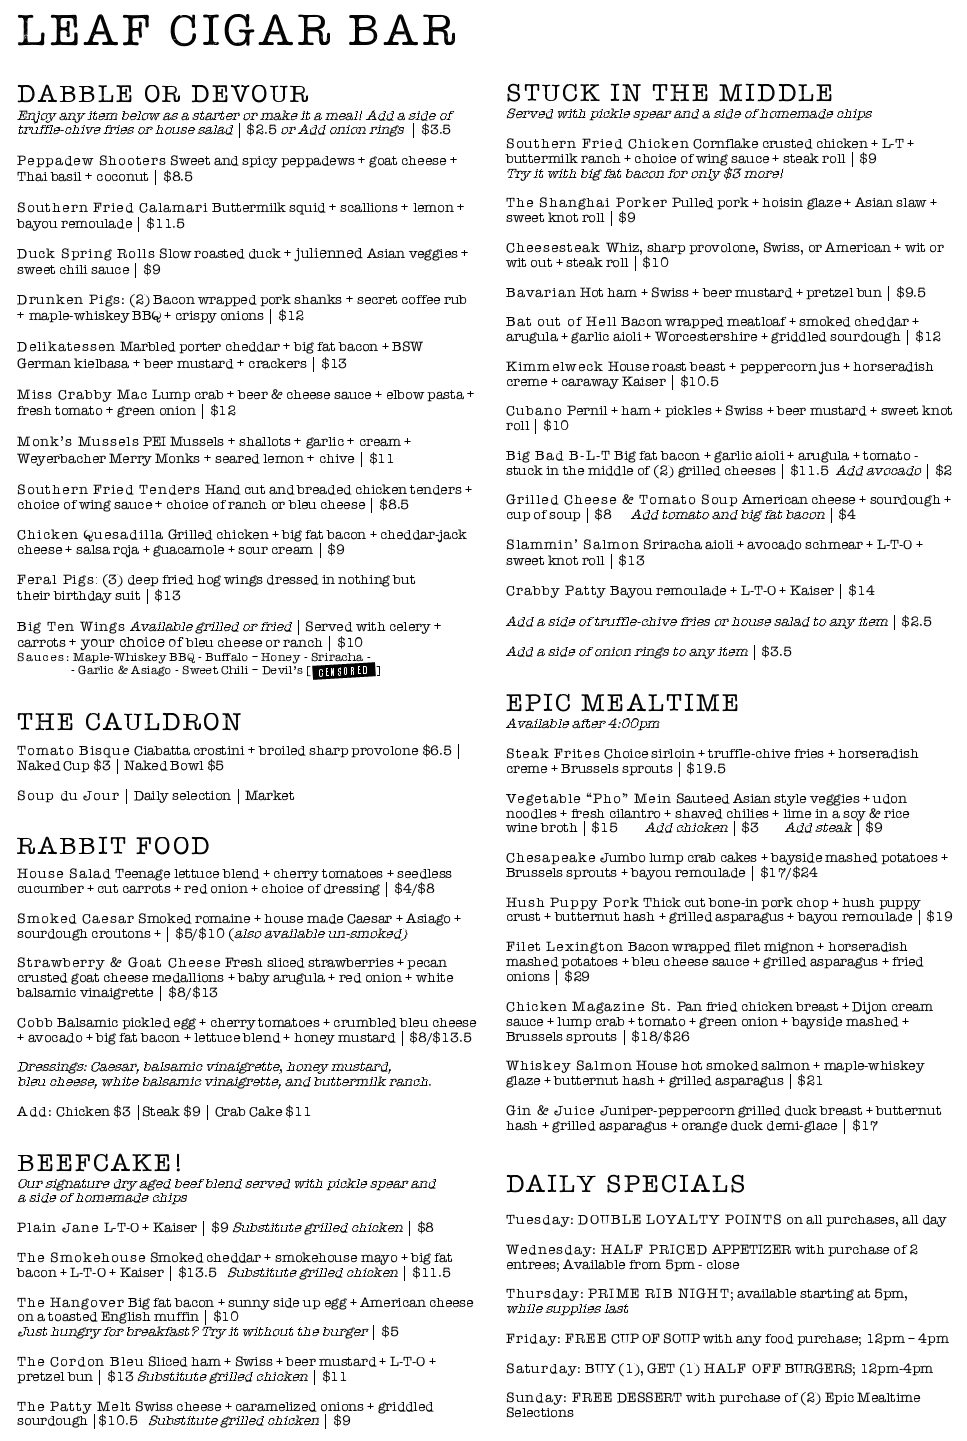 Leaf Menu - March 2015